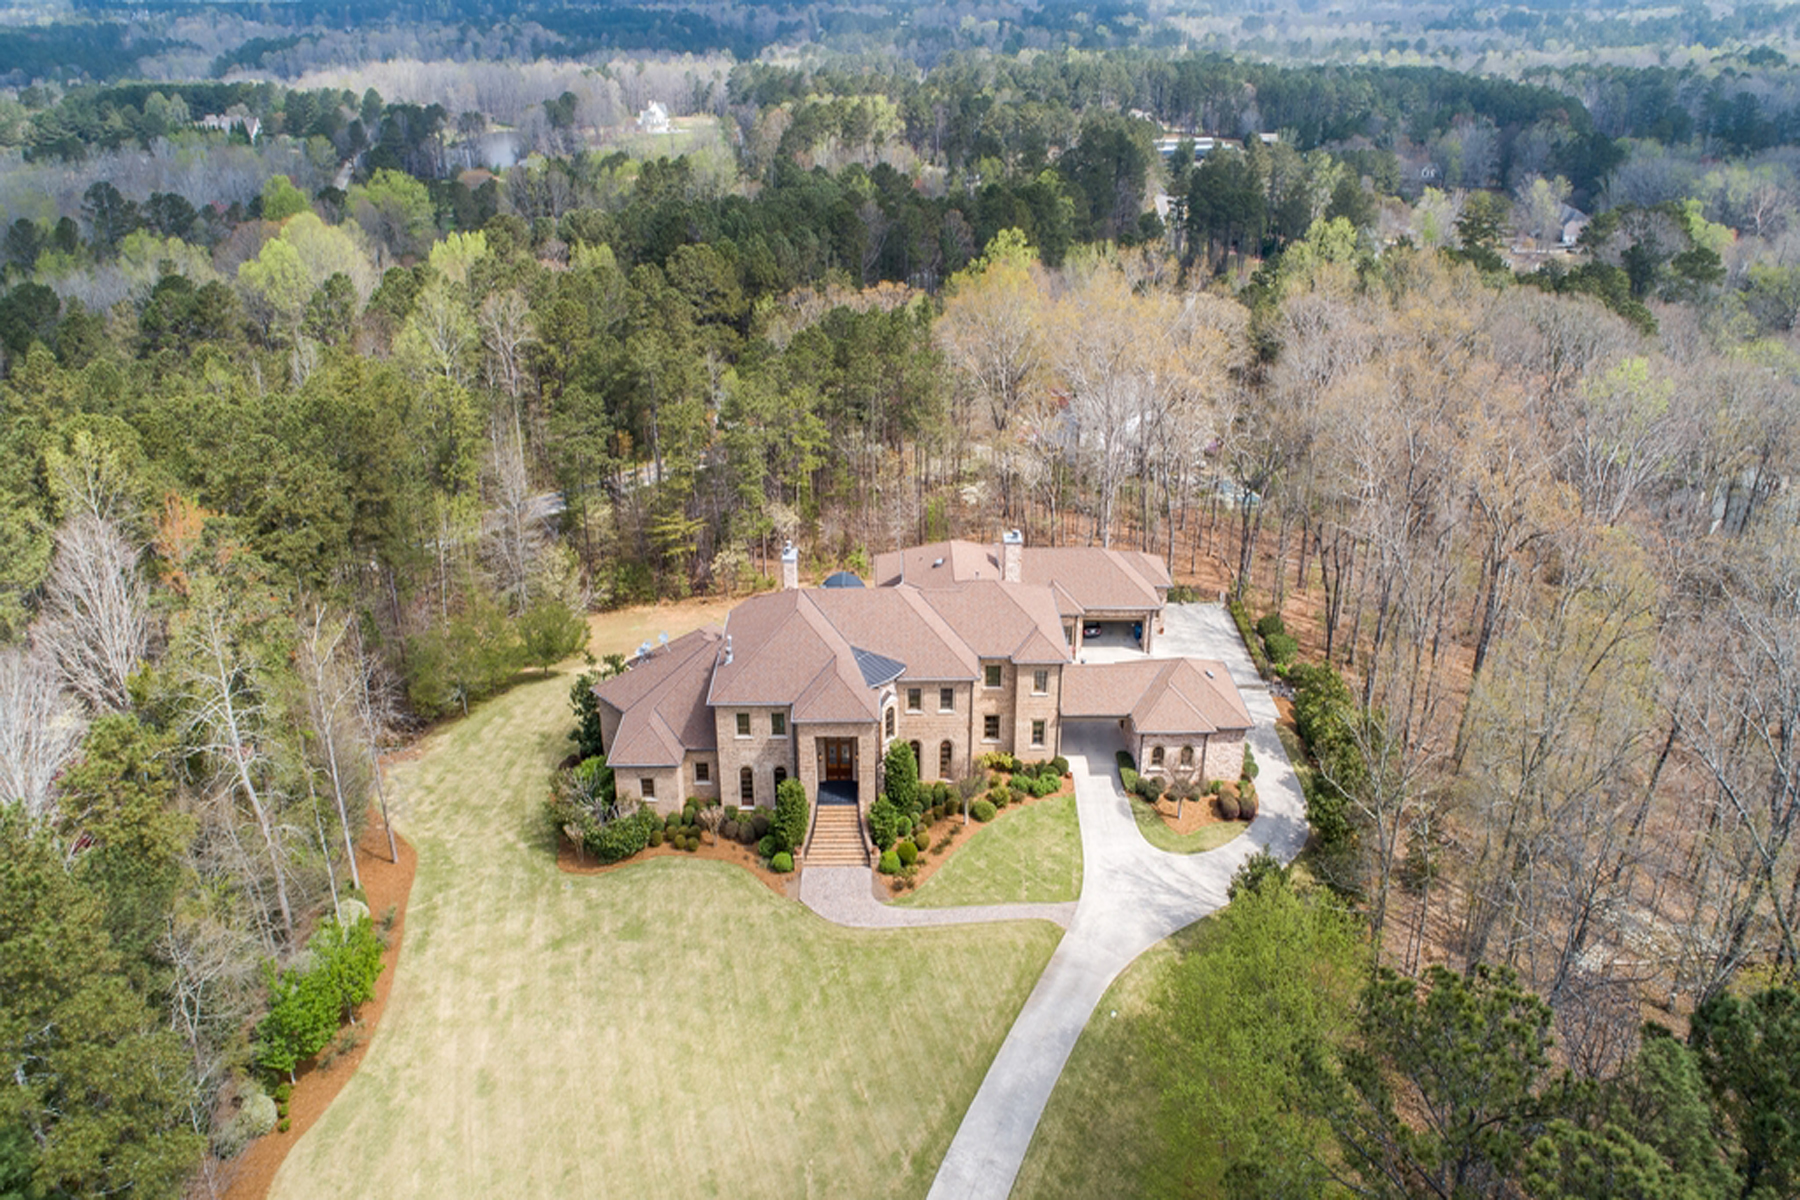 Single Family Home for Sale at An Idyllic Haven From The Hustle And Bustle 1320 Summit Road Milton, Georgia 30004 United States